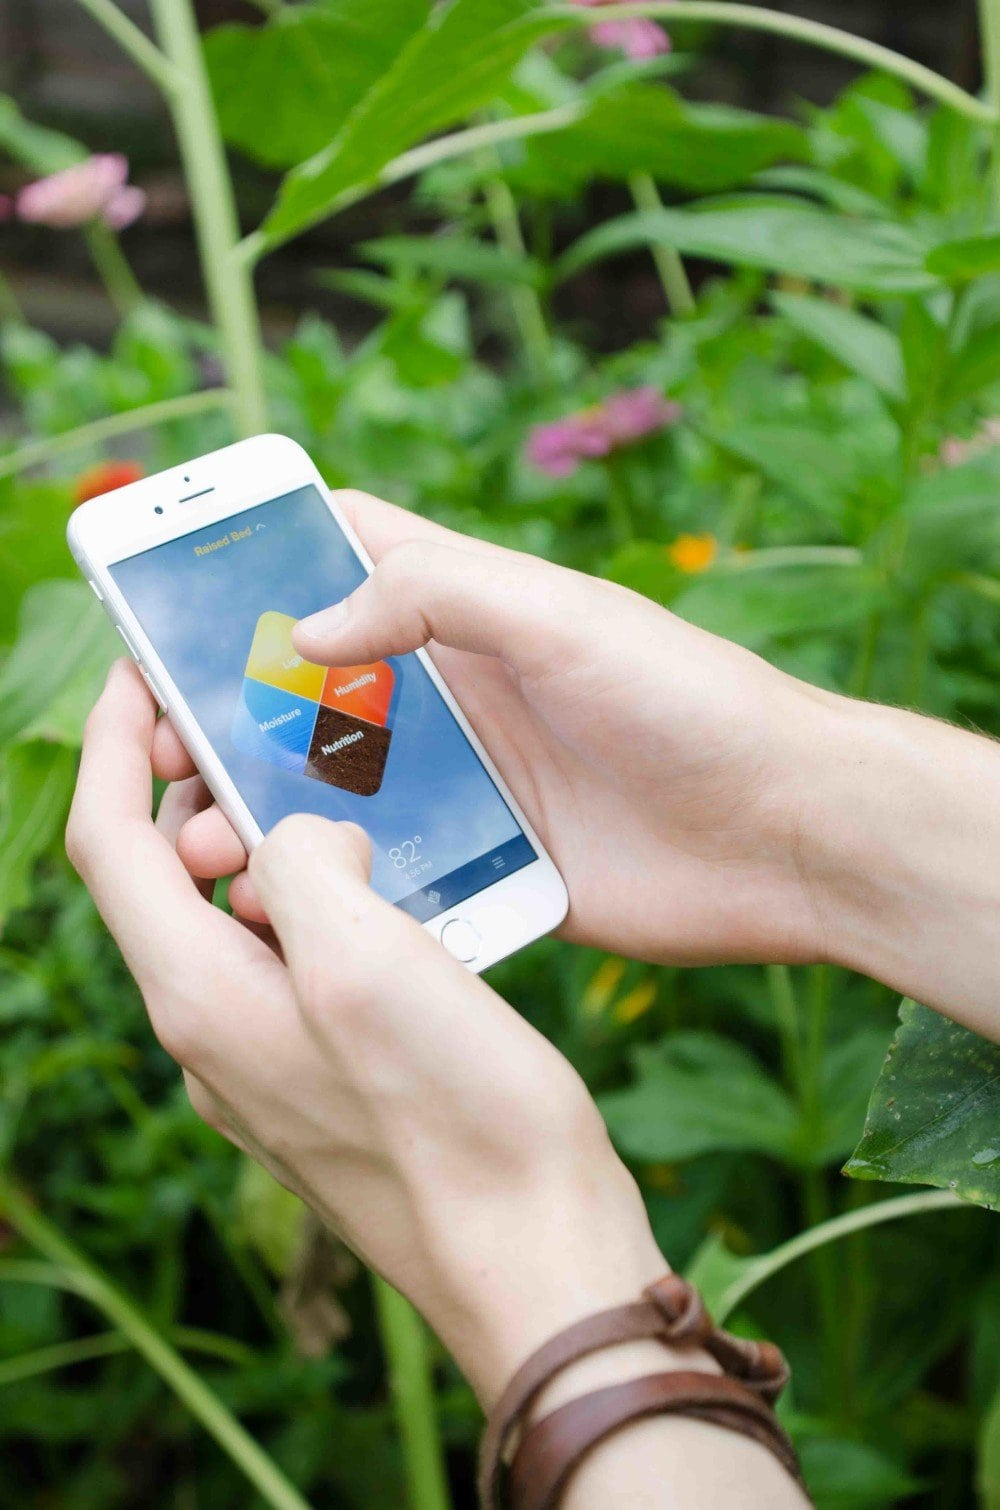 Edyn garden sensor technology that will change the way you work in the garden.